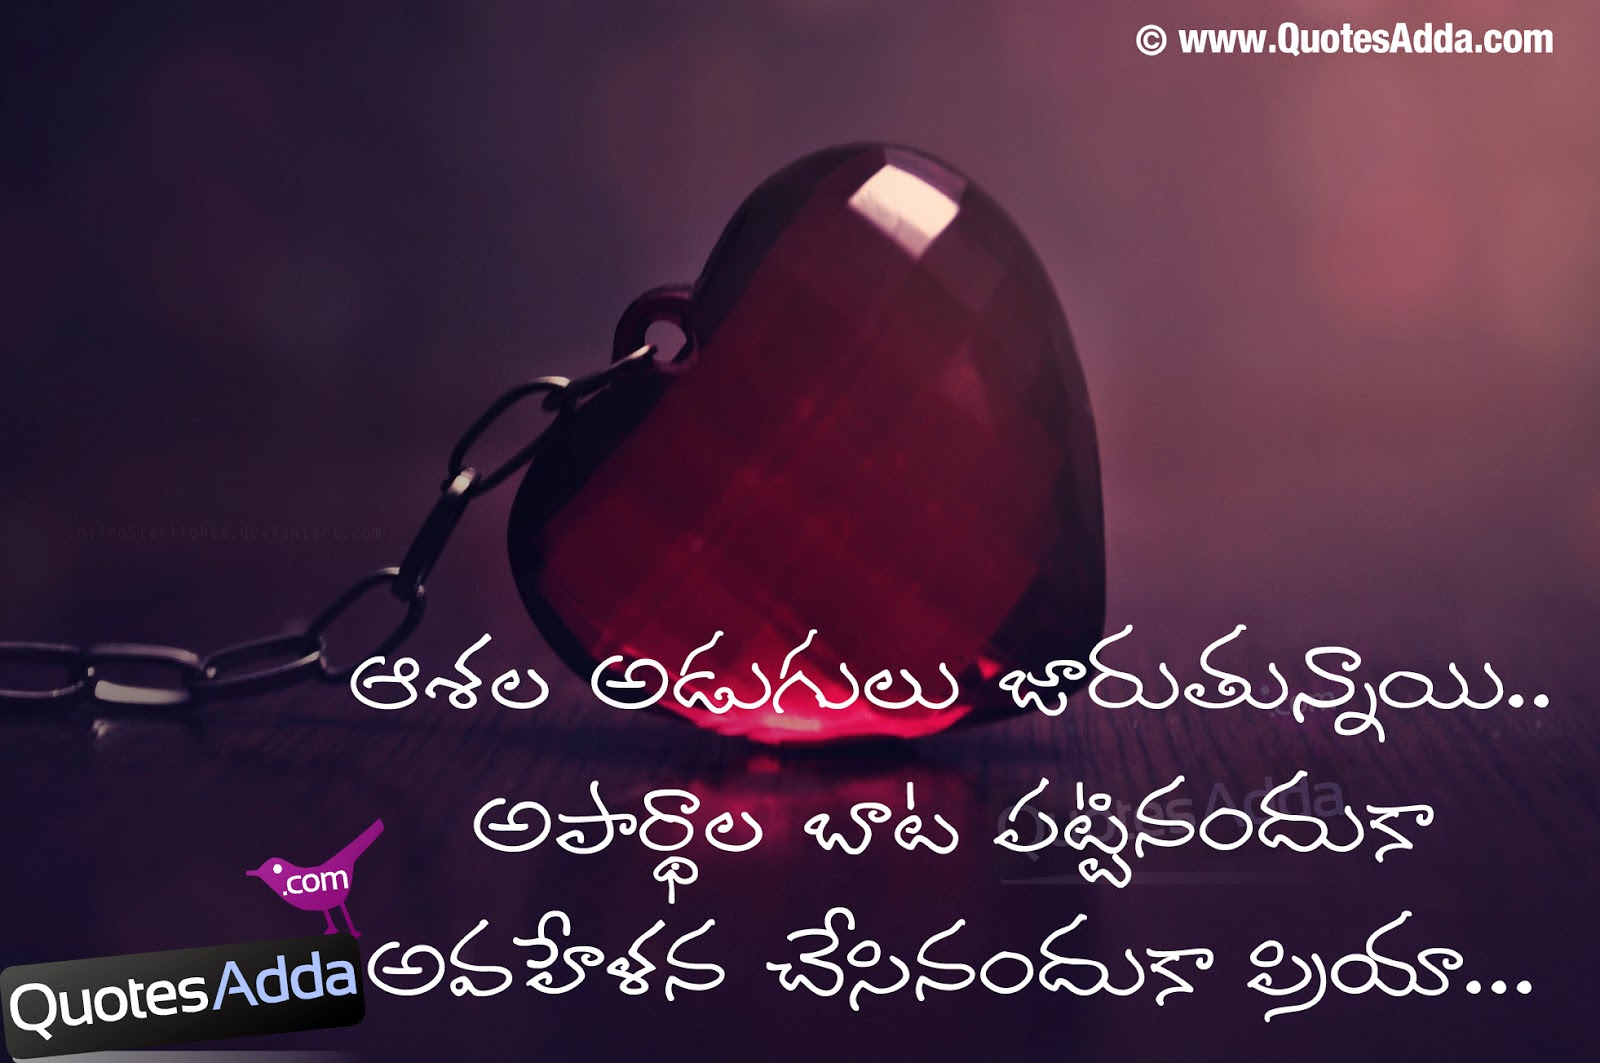 48 telugu quotes wallpapers nice funny telugu kids quotes Quotes